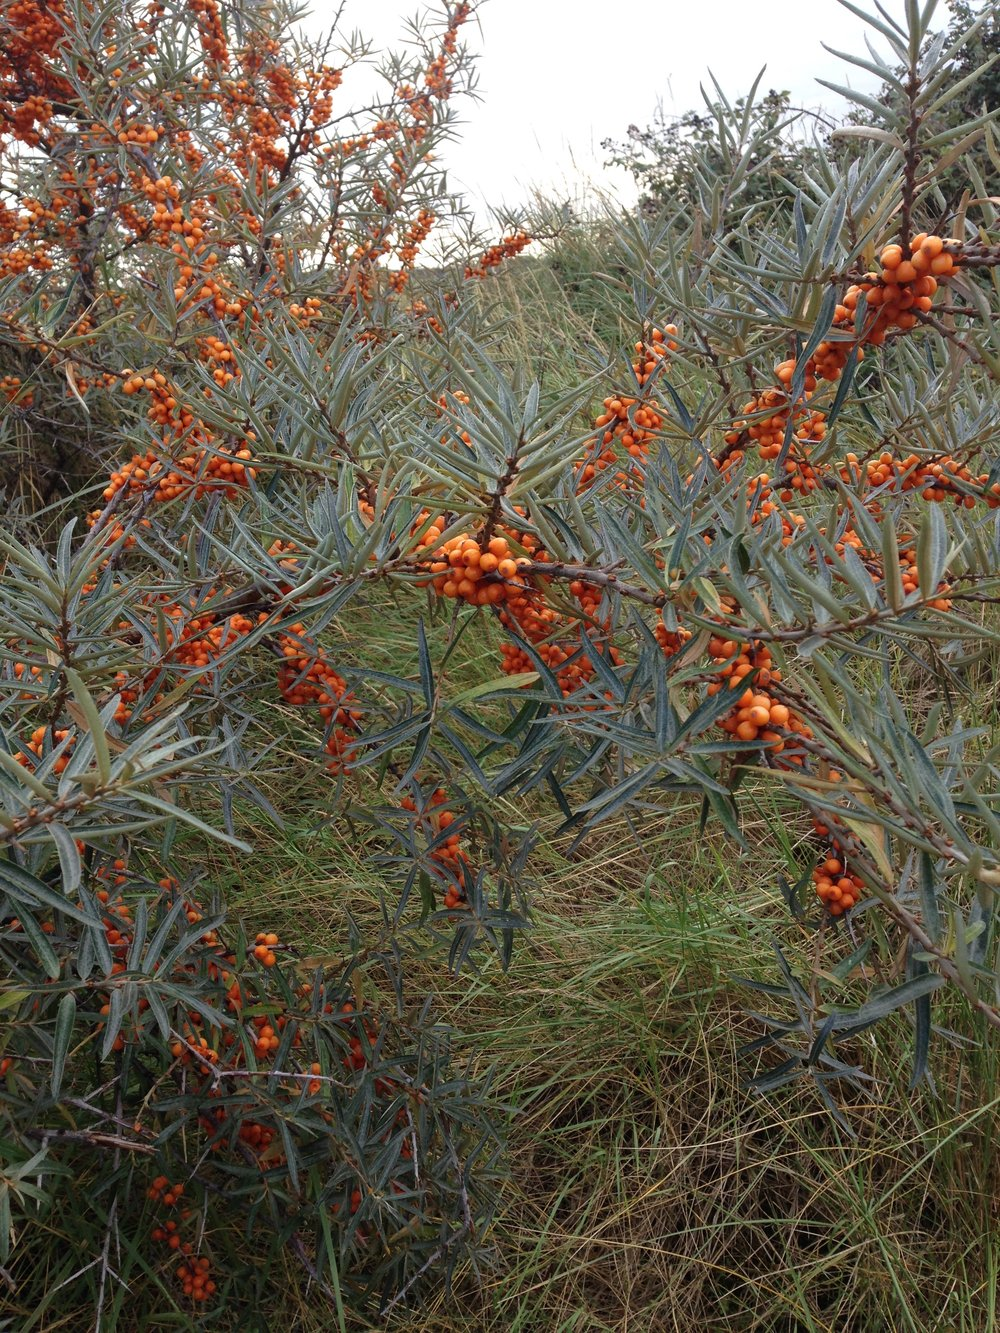 Sea buckthorn grows on the dunes